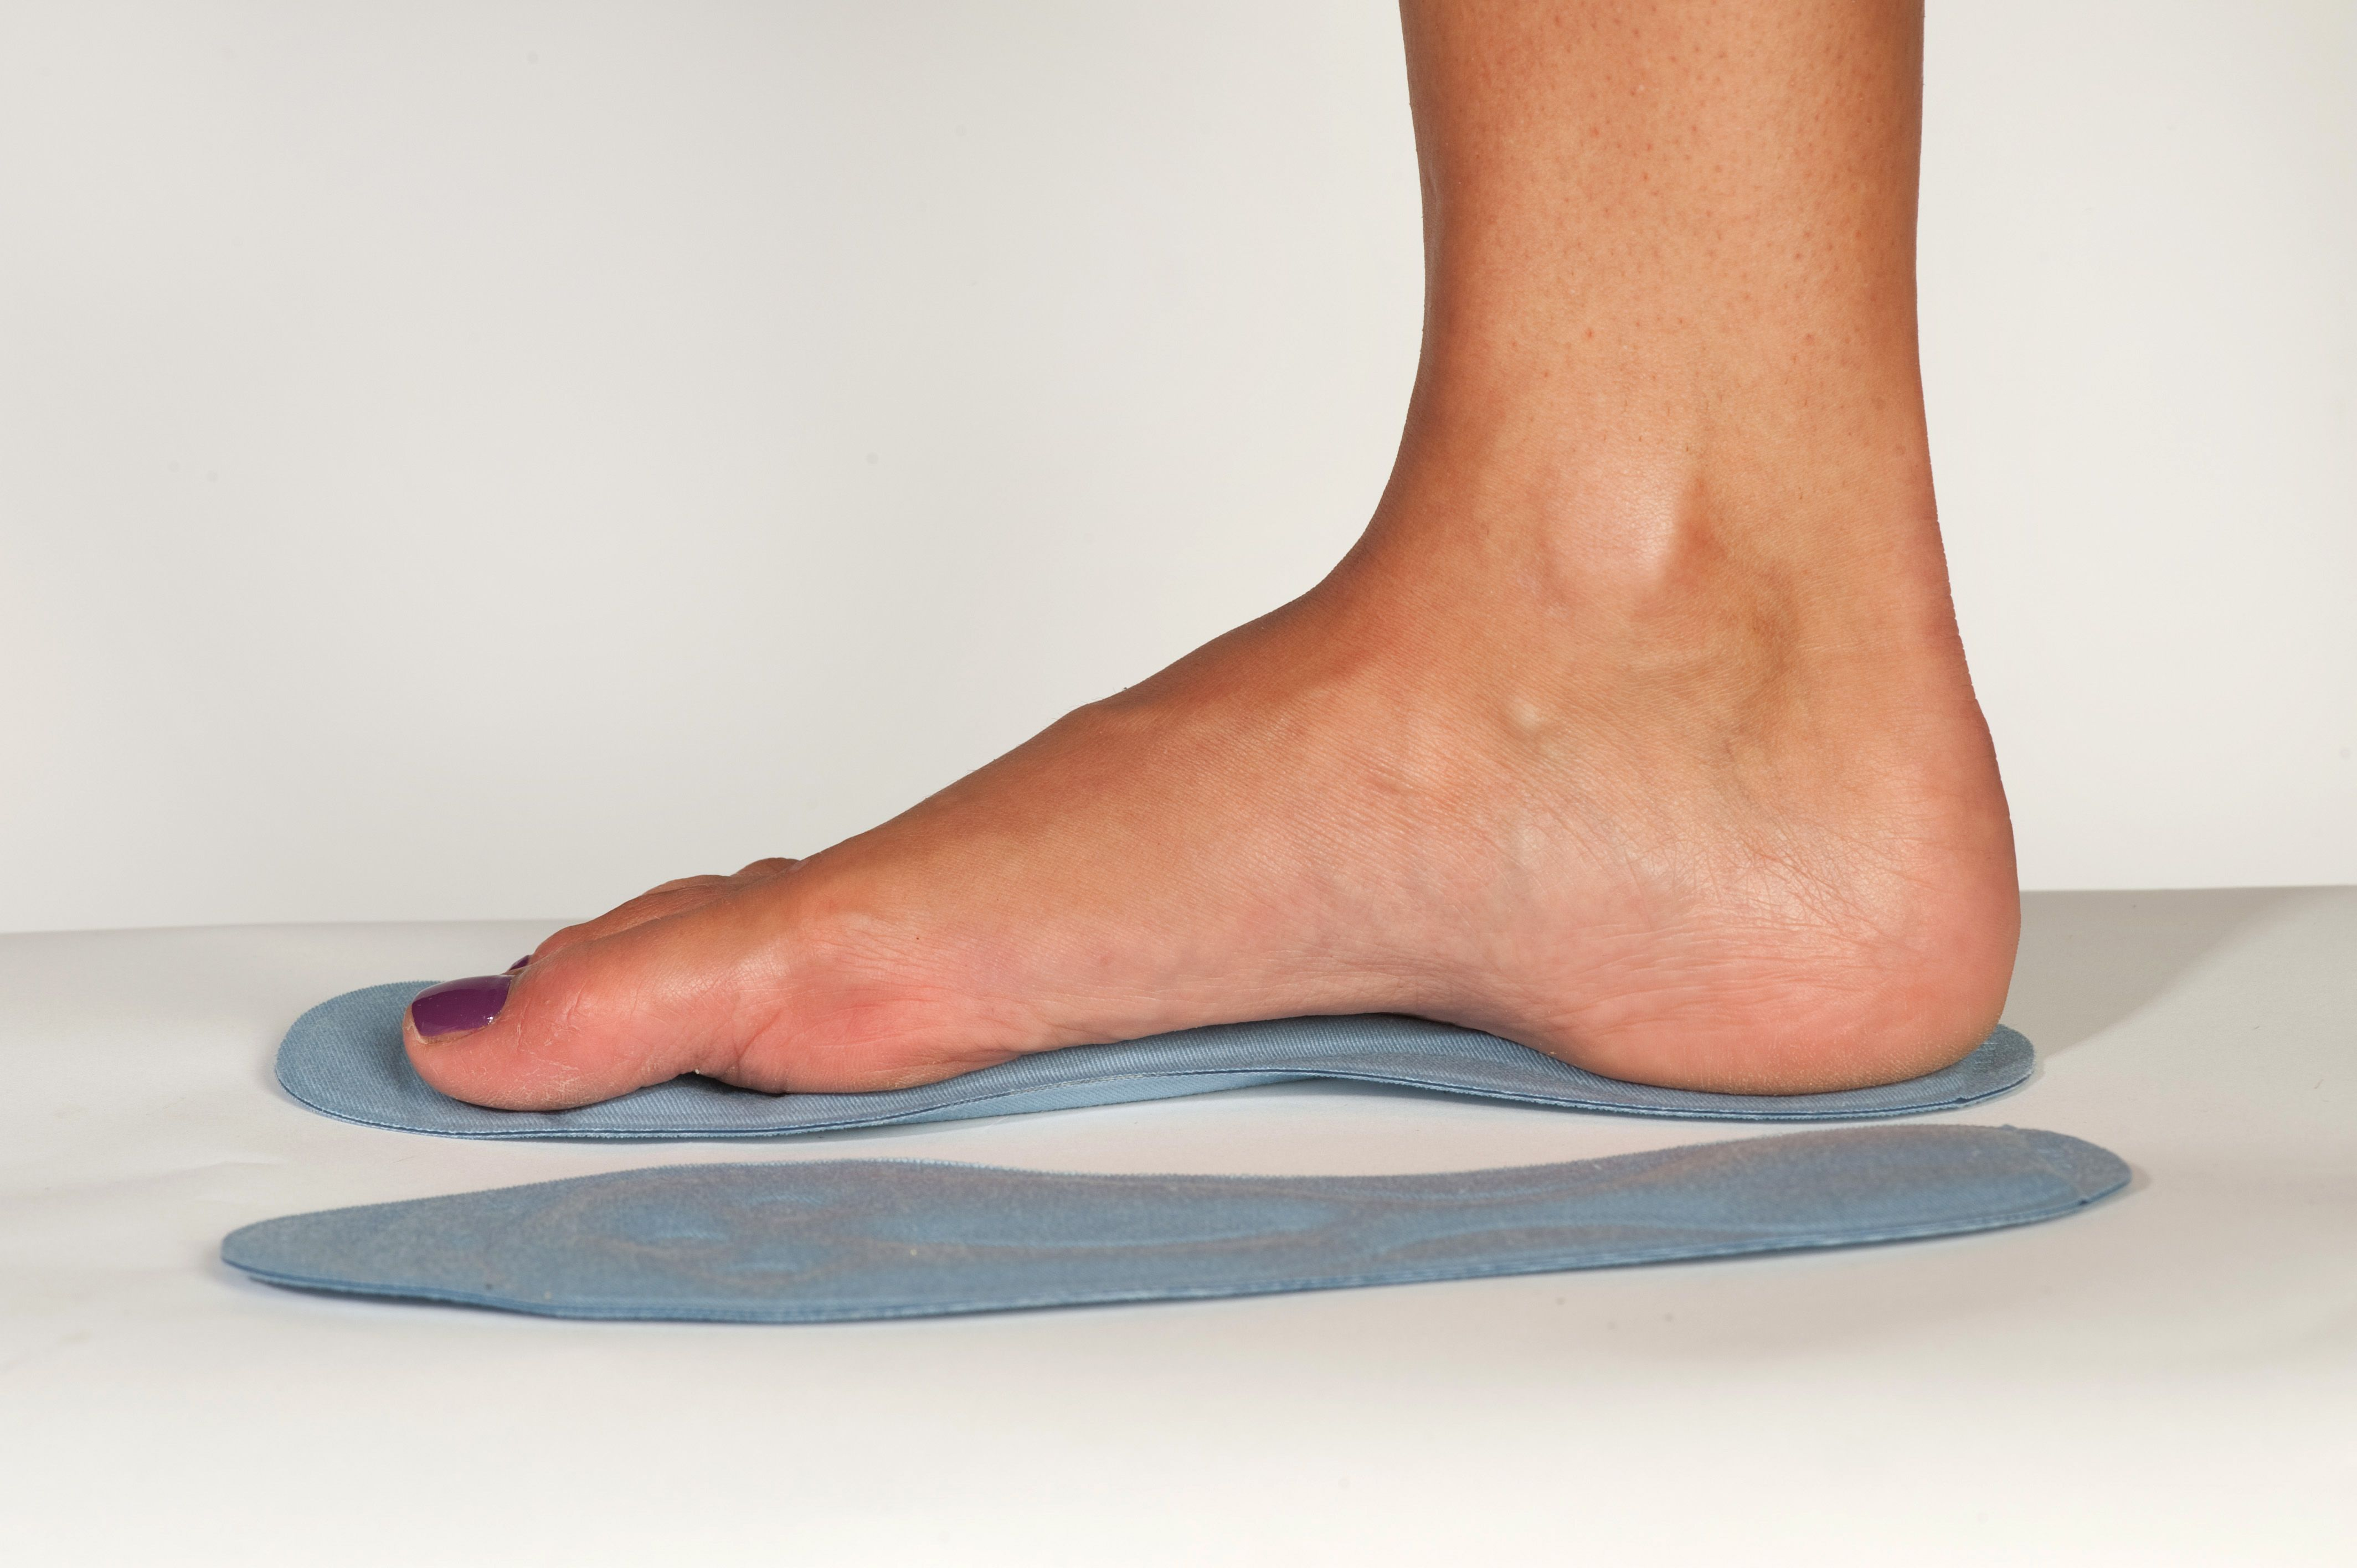 liqua care flowgel insoles sports supports mobility